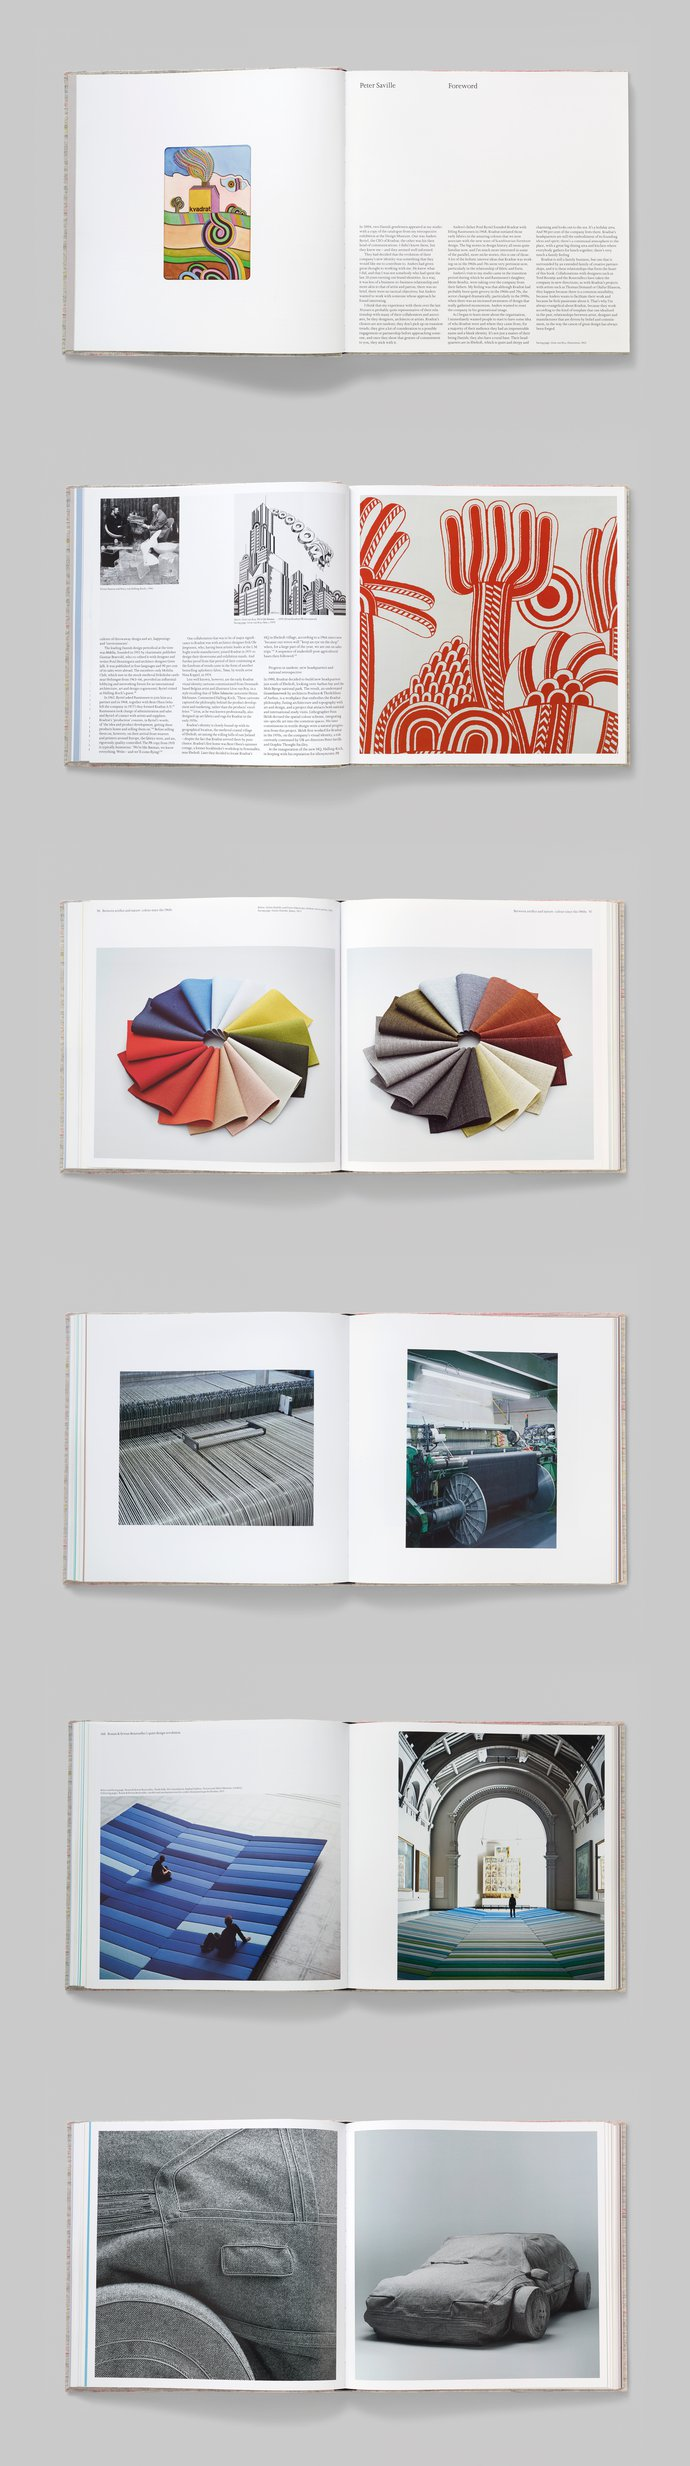 Kvadrat – Interwoven: Kvadrat textile and design, 2014 (Publication), image 4